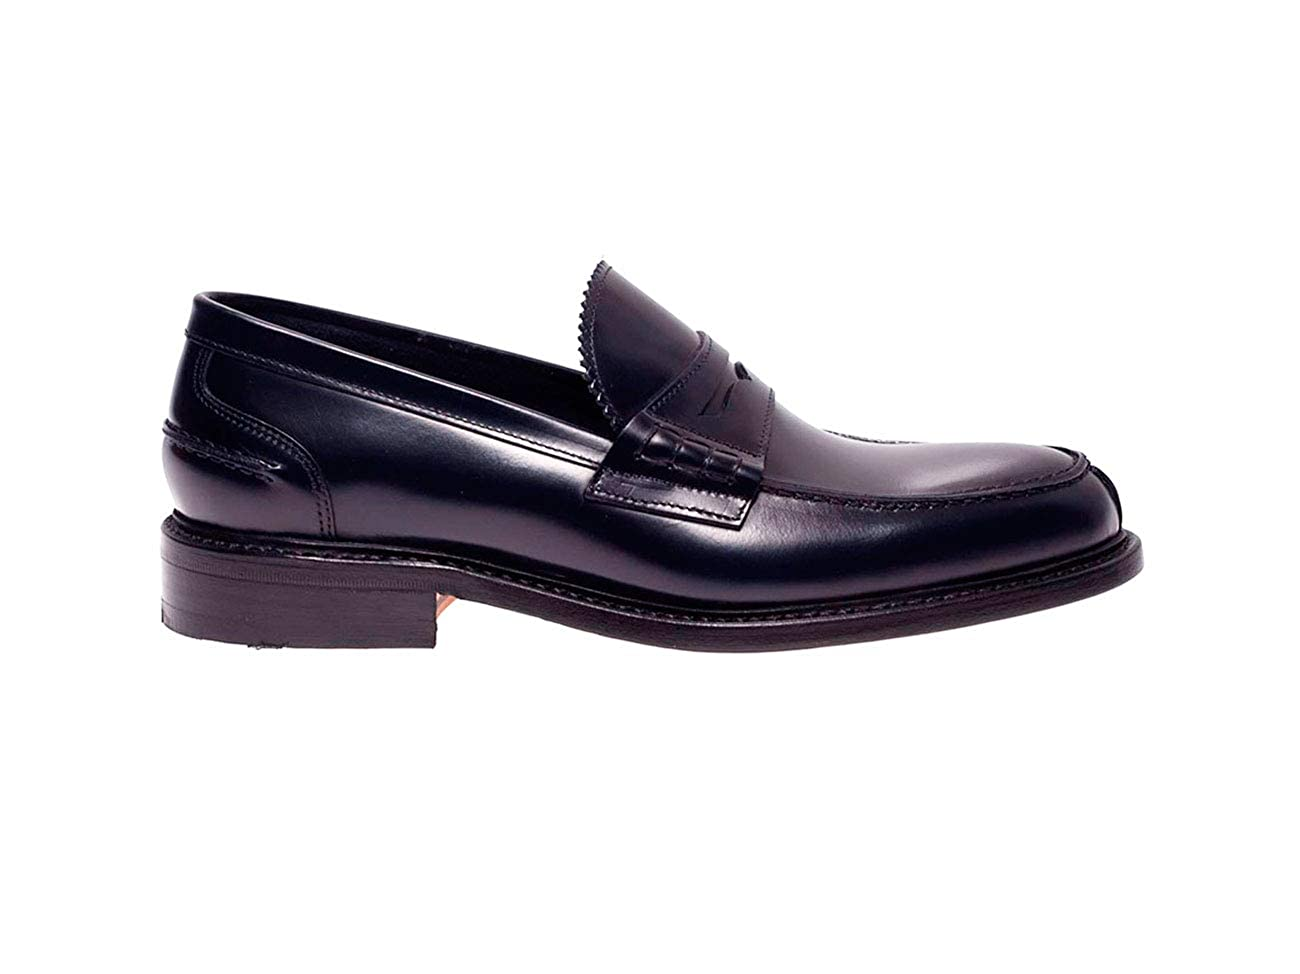 BERWICK 1707 Loafers IN Leather azul, Hombre. -